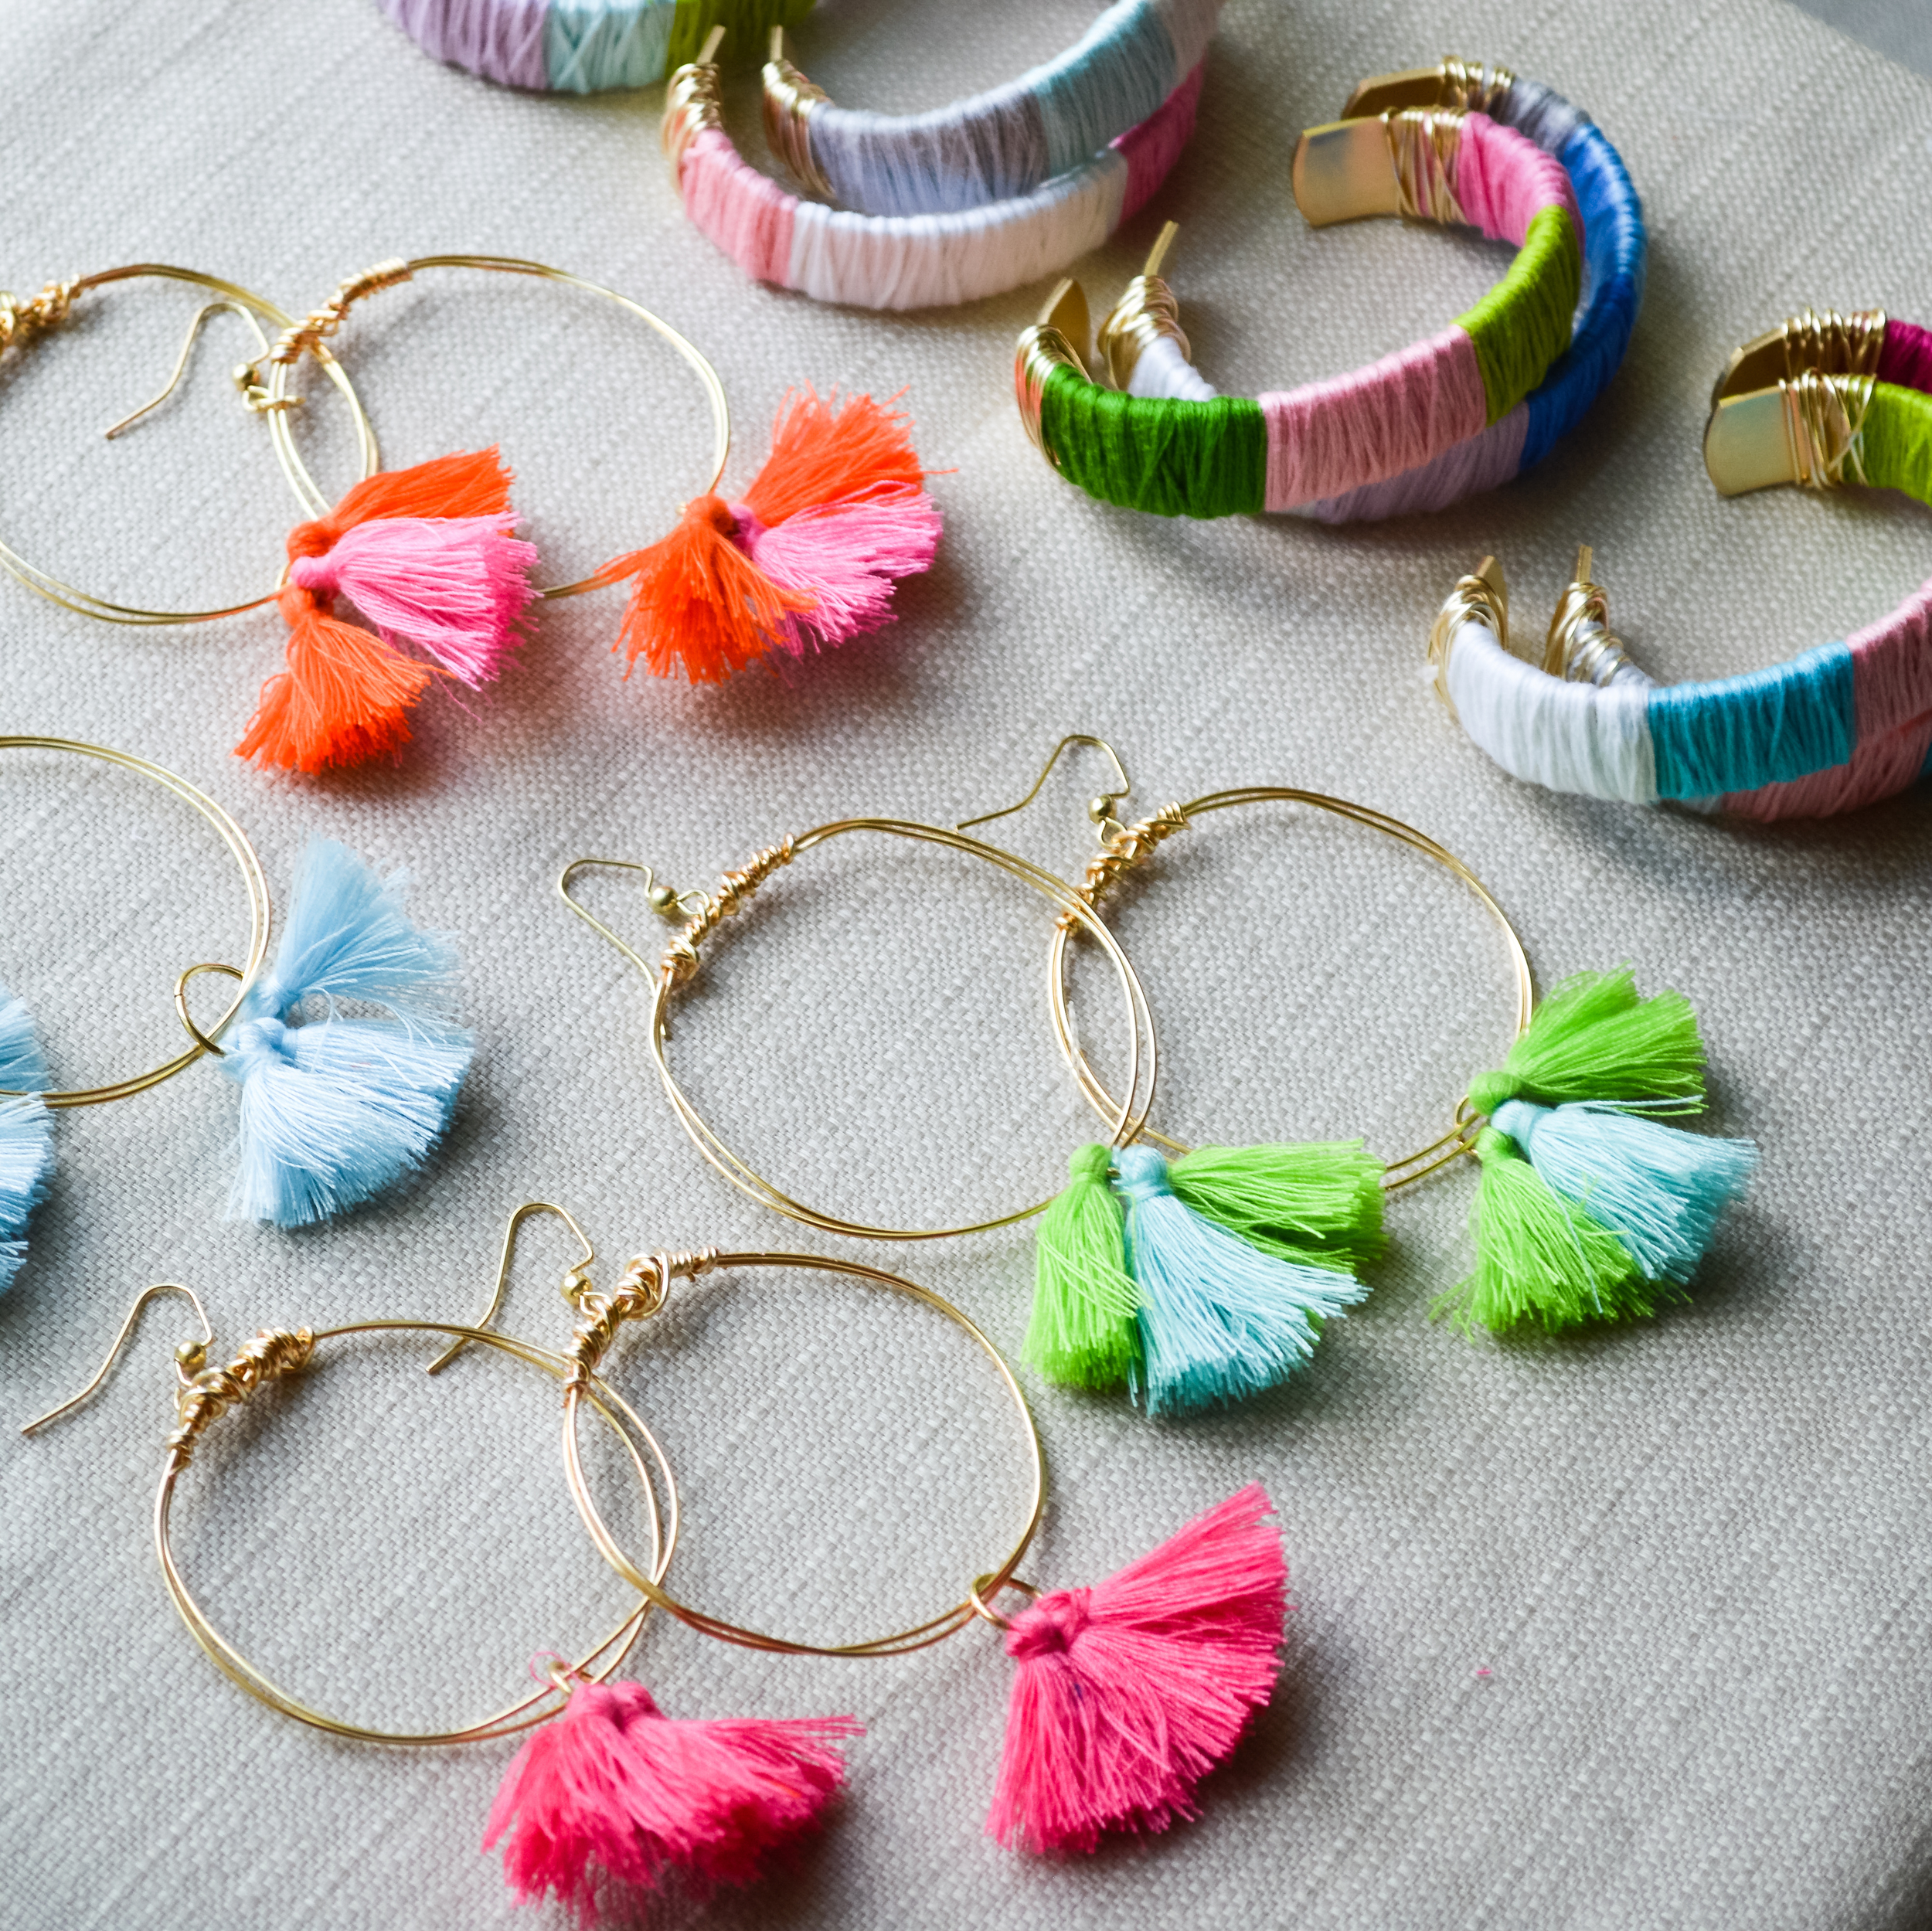 lcb_style_collection_accessories (28 of 34).jpg